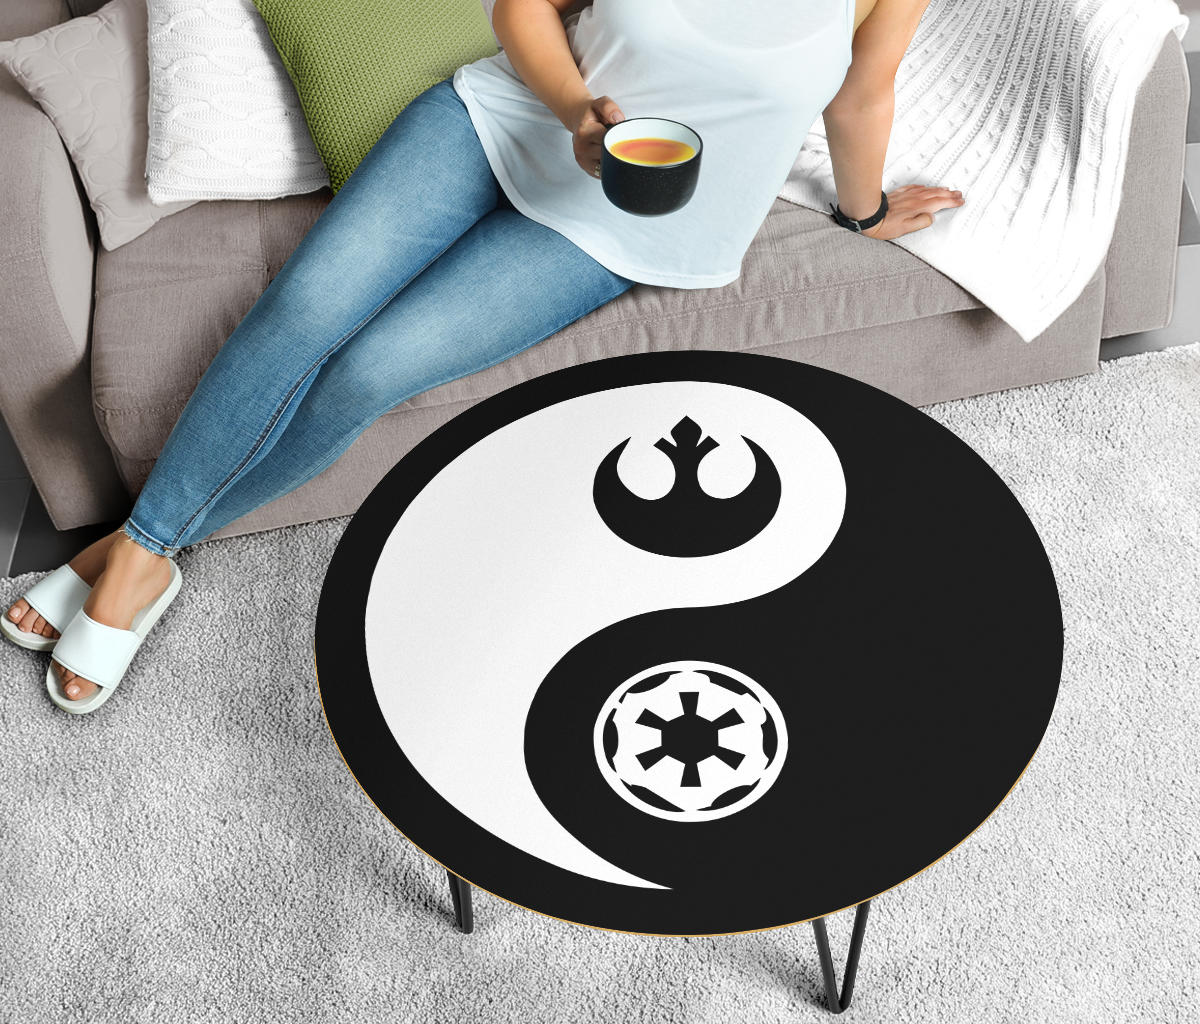 Star Wars Coffee Table - Yin Yang - Modern Wood Round Table